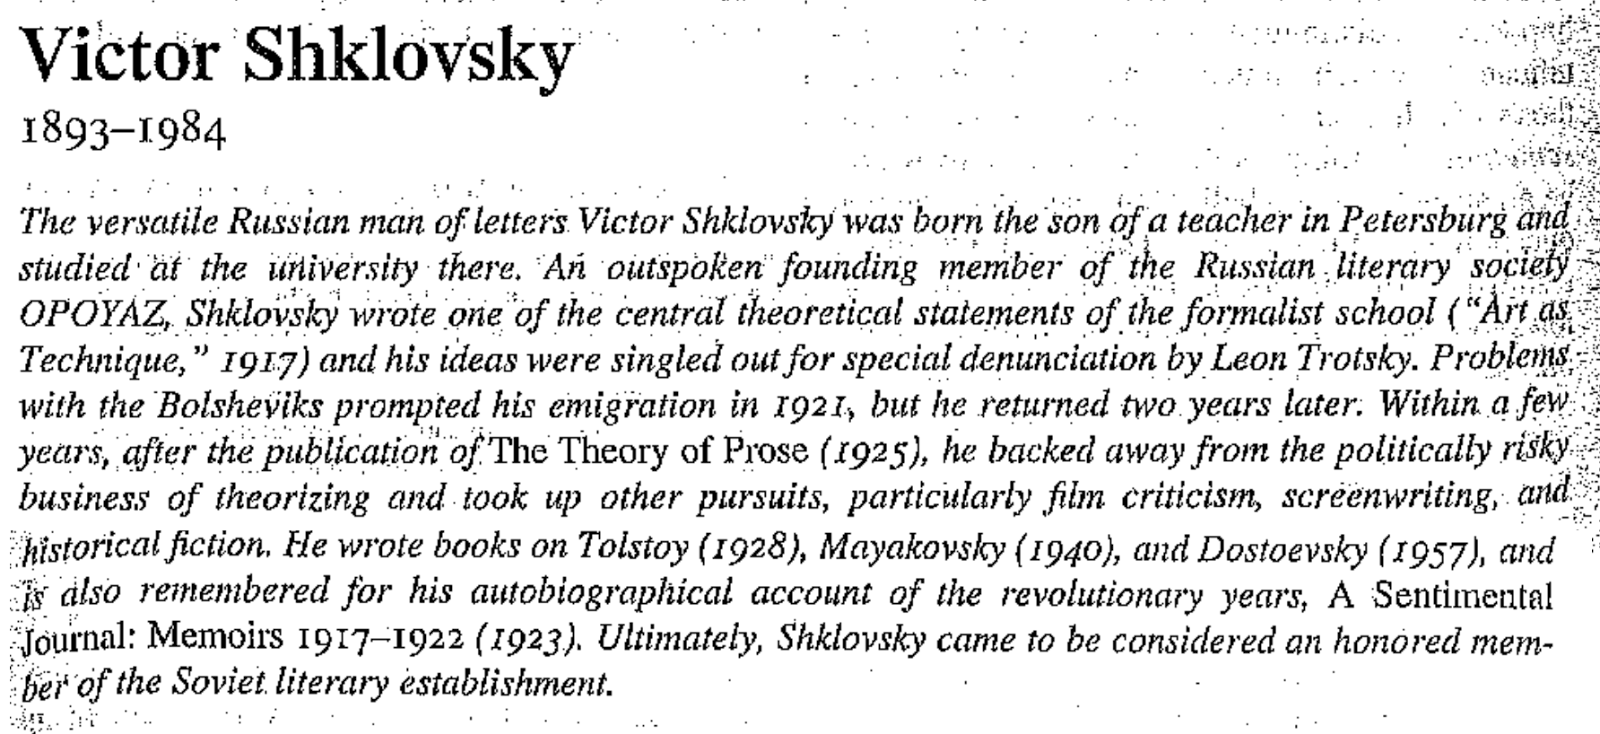 "shklovsky art as technique essay In his essay ""art as technique,"" victor shklovsky proposes the process of defamiliarization as a method of creating art and viewing reality in order to challenge the traditional understanding of poetry and imagery as quickly comprehensible."